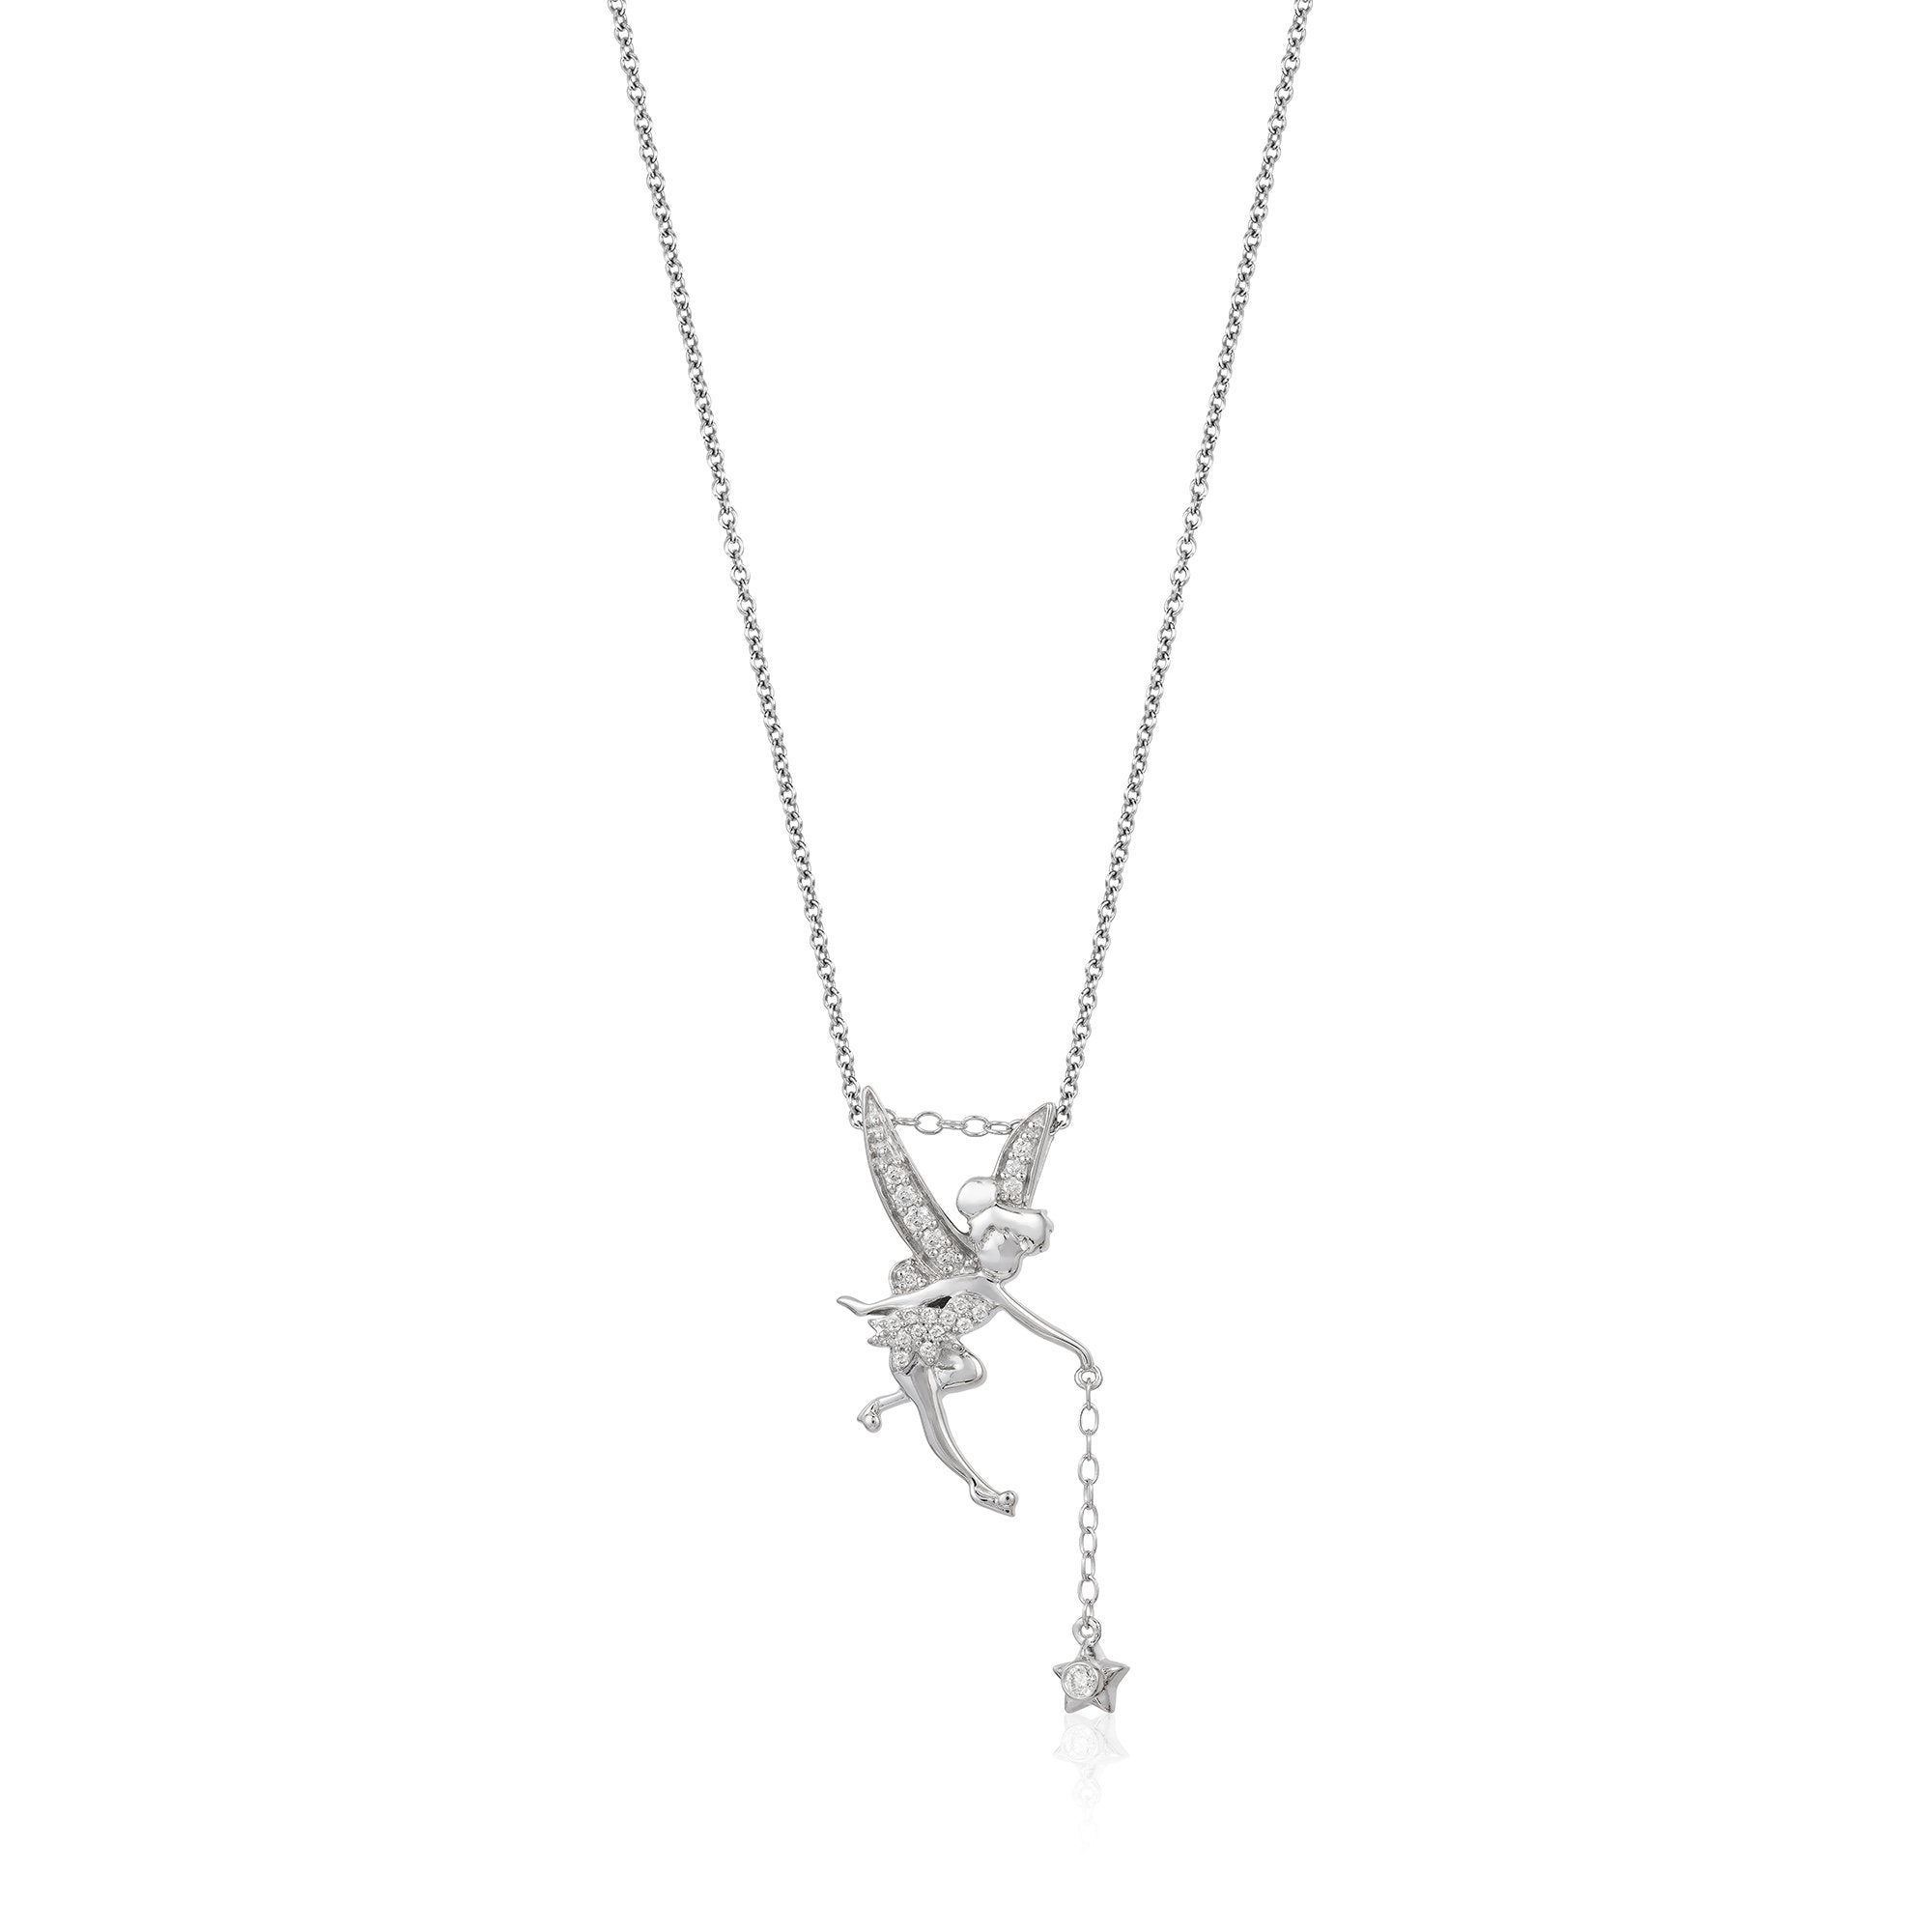 enchanted_disney-tinker-bell_wings_pendant-sterling_silver_0.10CTTW_1